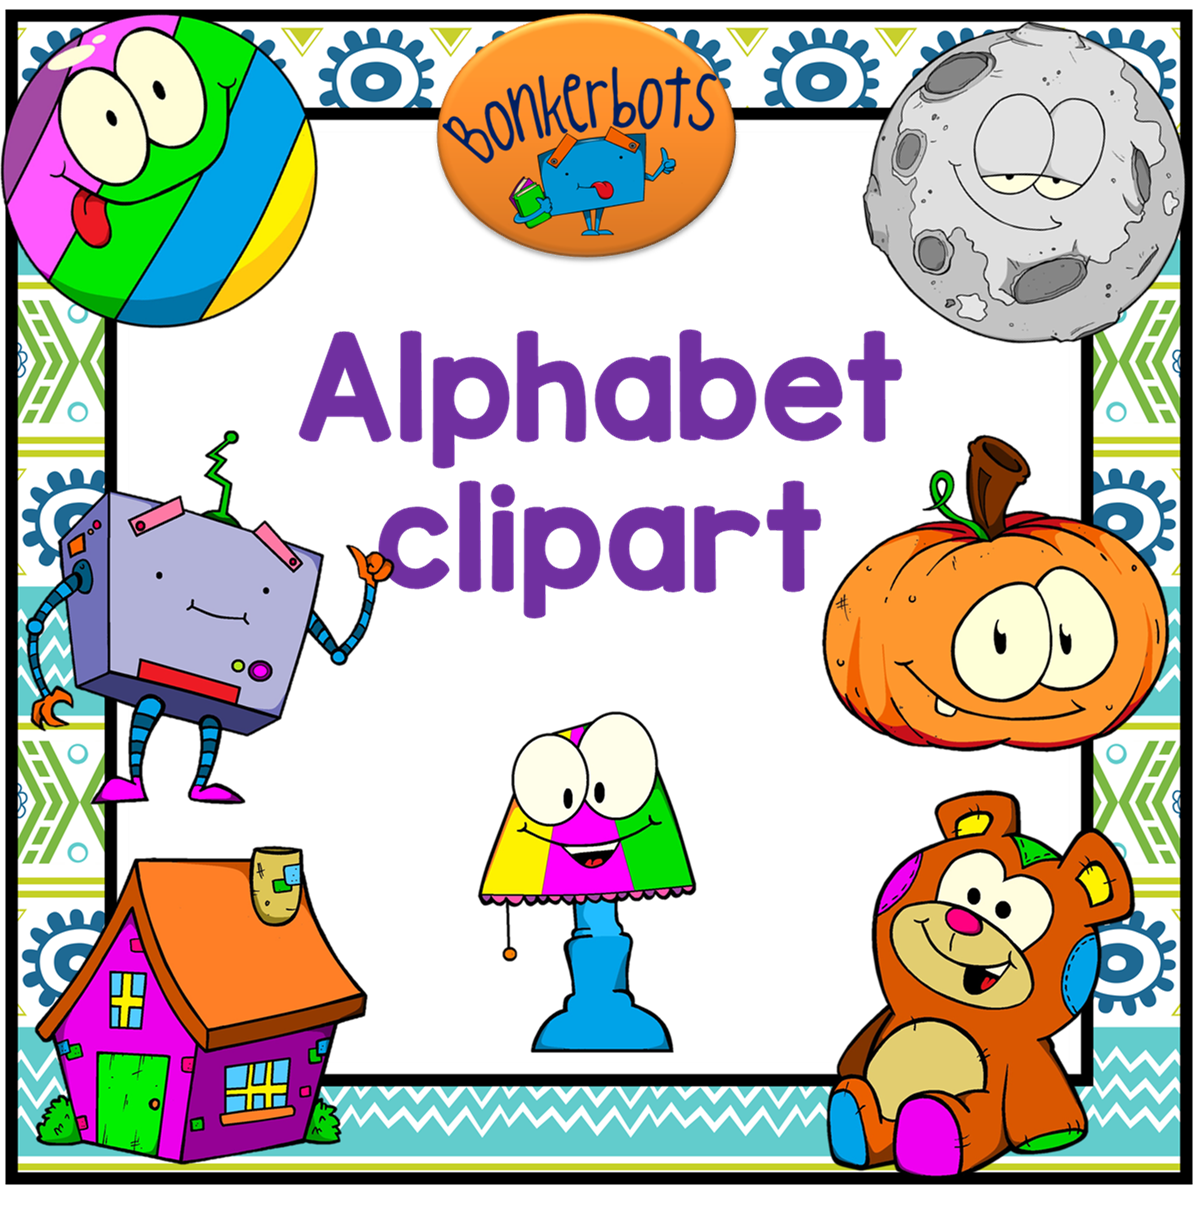 Alphabet clipart images picture royalty free download Alphabet Clipart picture royalty free download